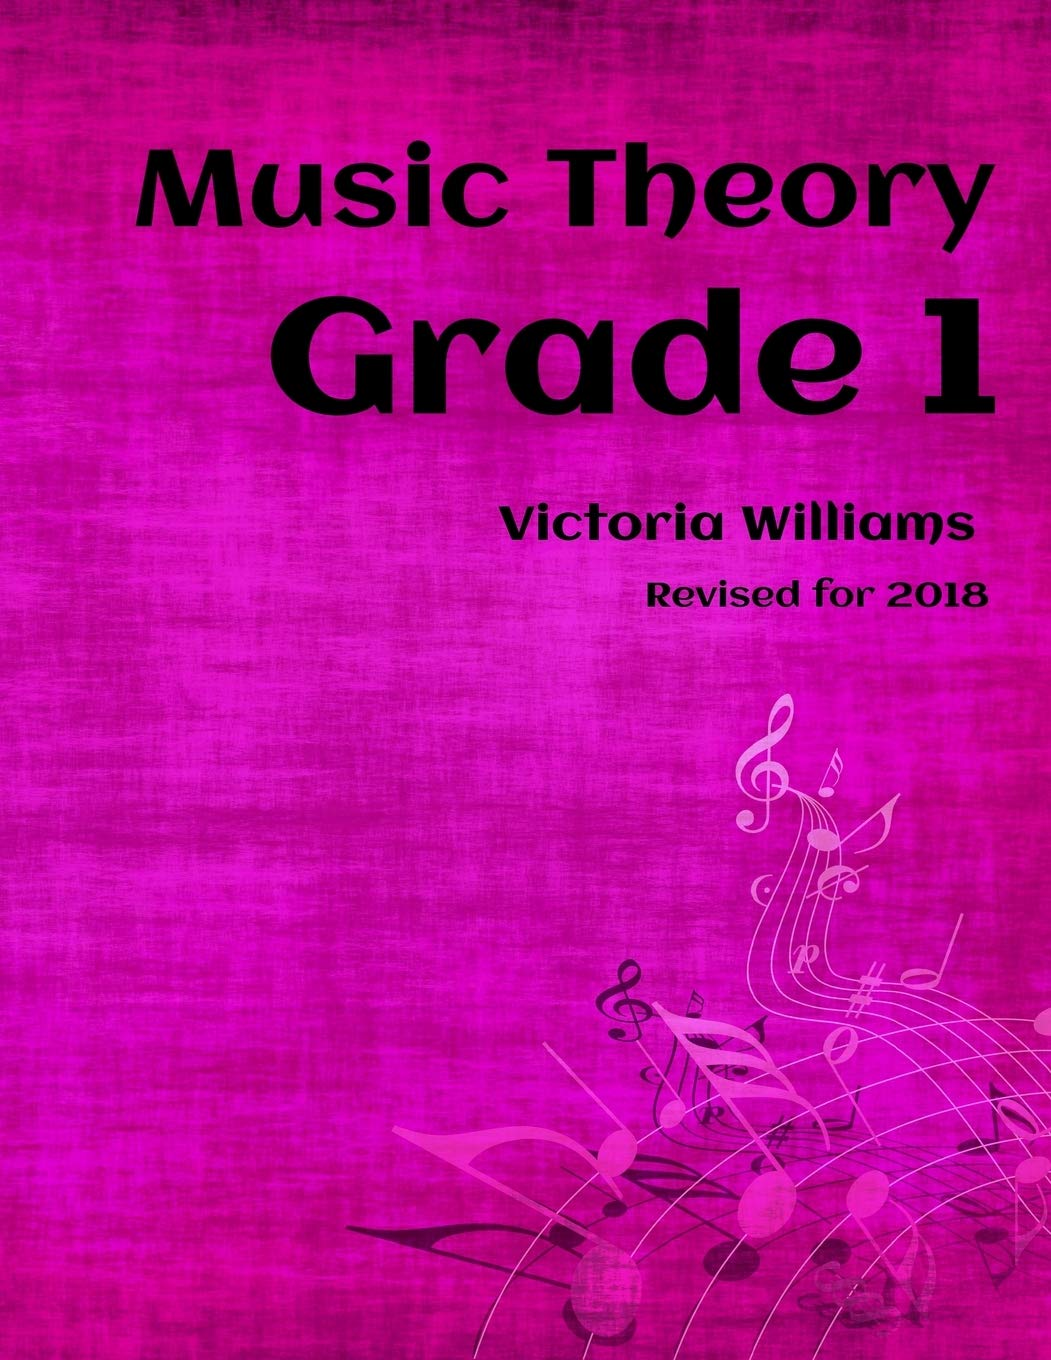 Grade One Music Theory For Abrsm Candidates Mymusictheory Complete Courses Volume 1 Williams Victoria 9781530018574 Amazon Com Books